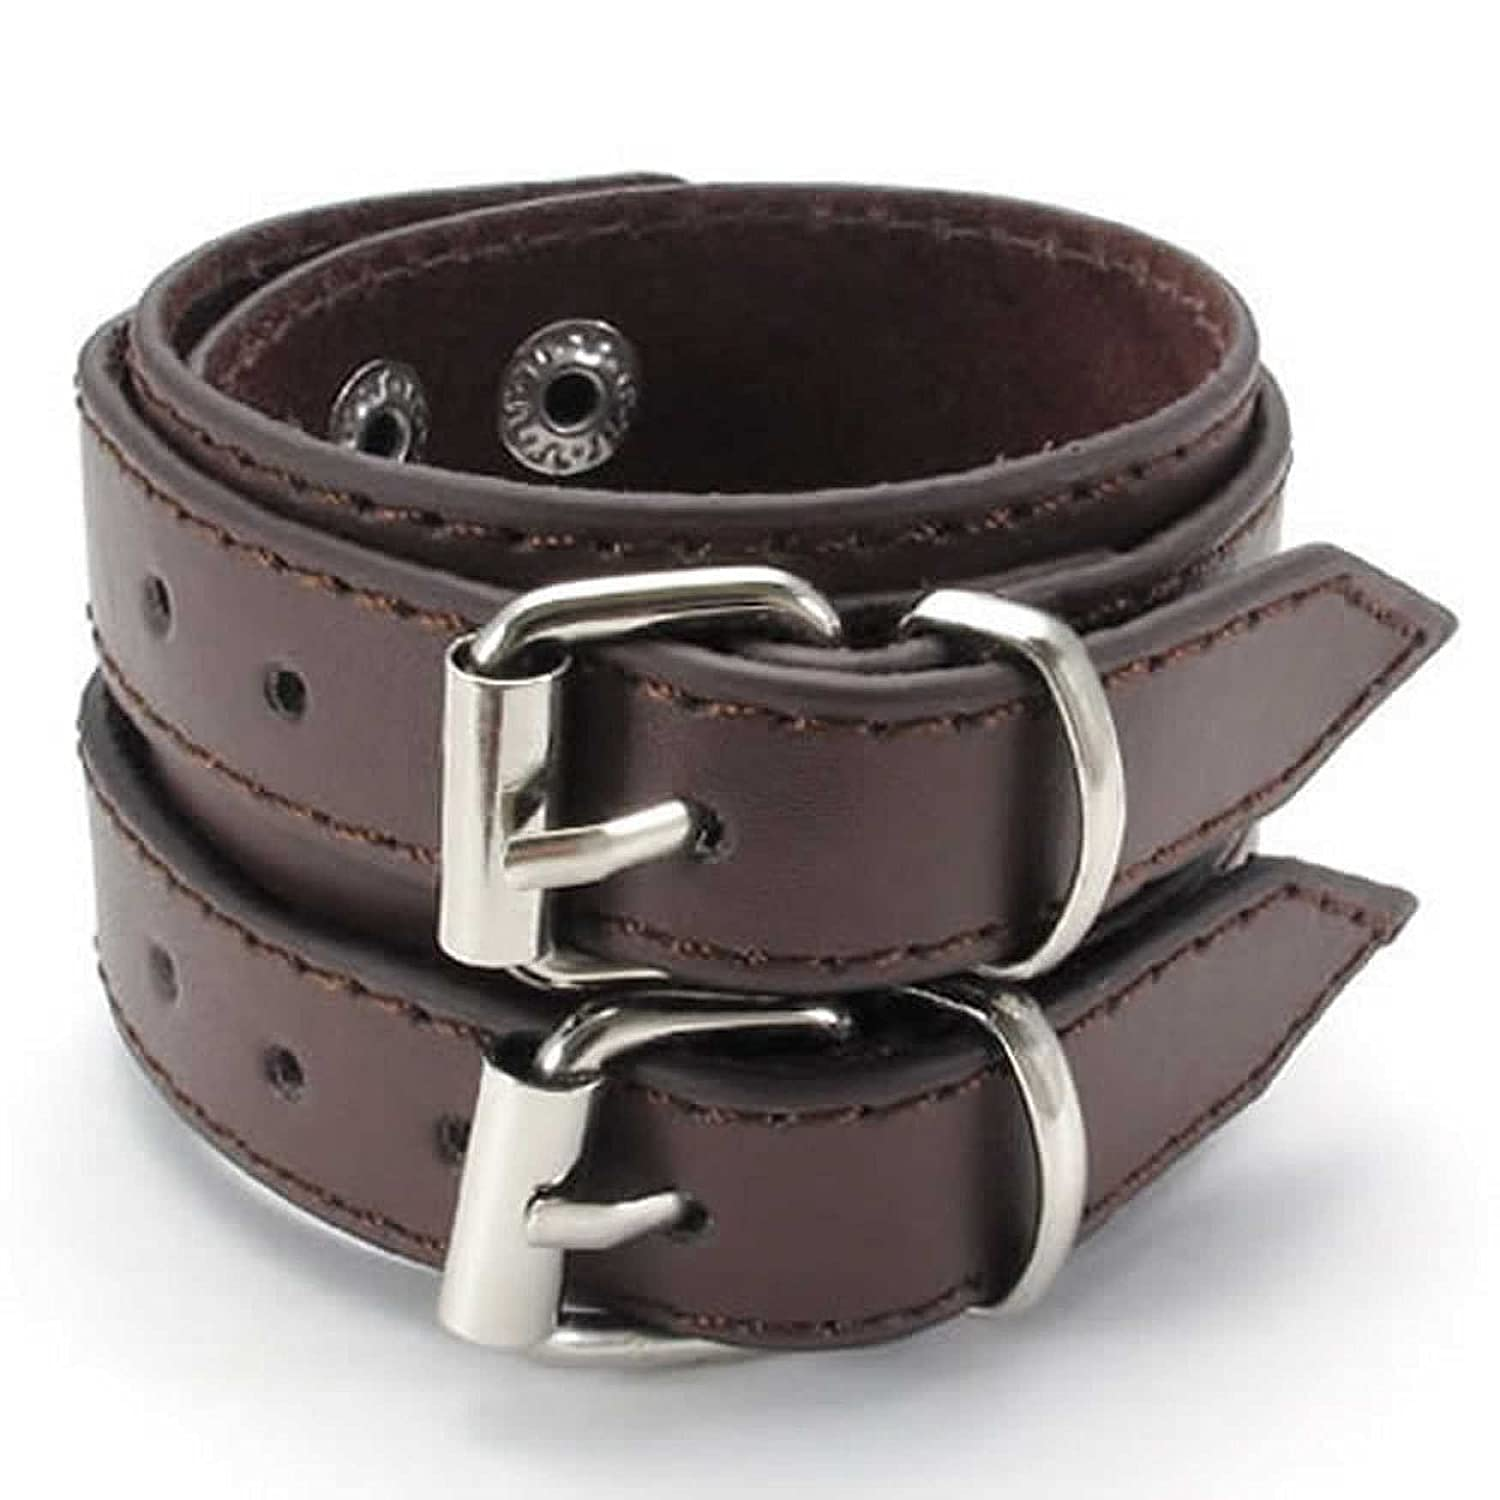 ANAZOZ Stainless Steel Rock 7.5-8.5 Cuff Bracelet Bangle Leather Wide Brown Mens Jewelry